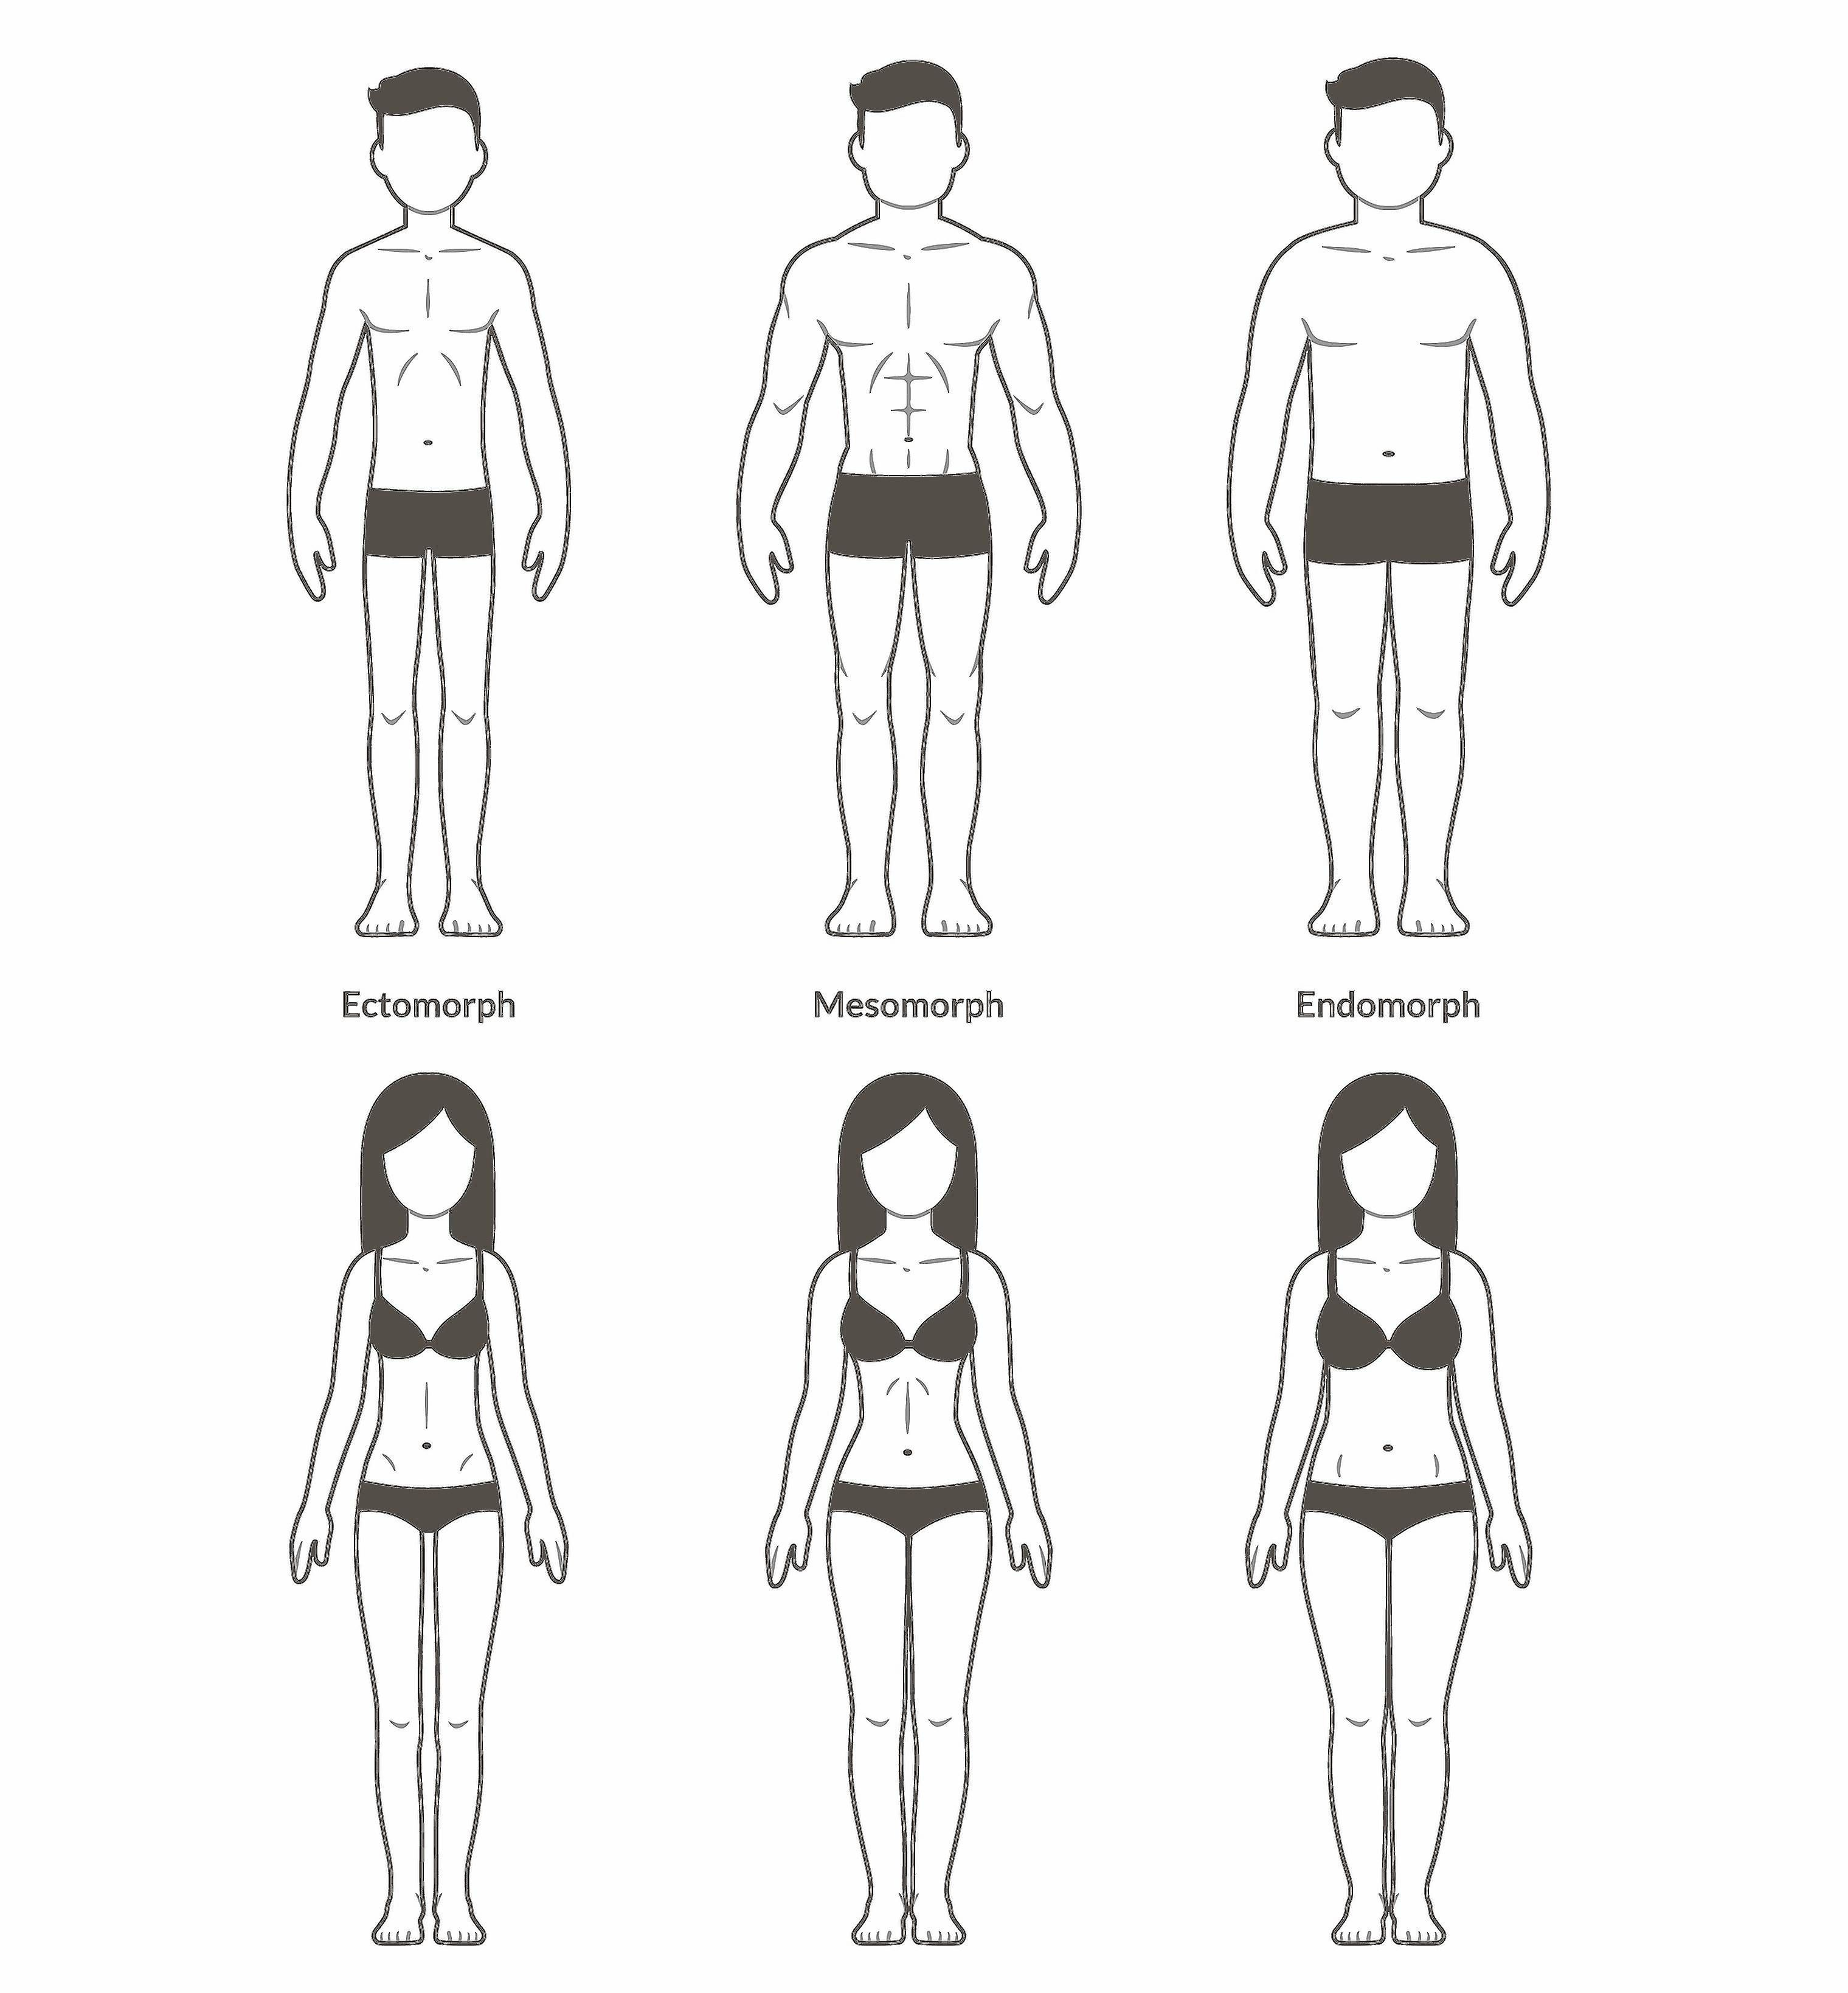 image of different body type